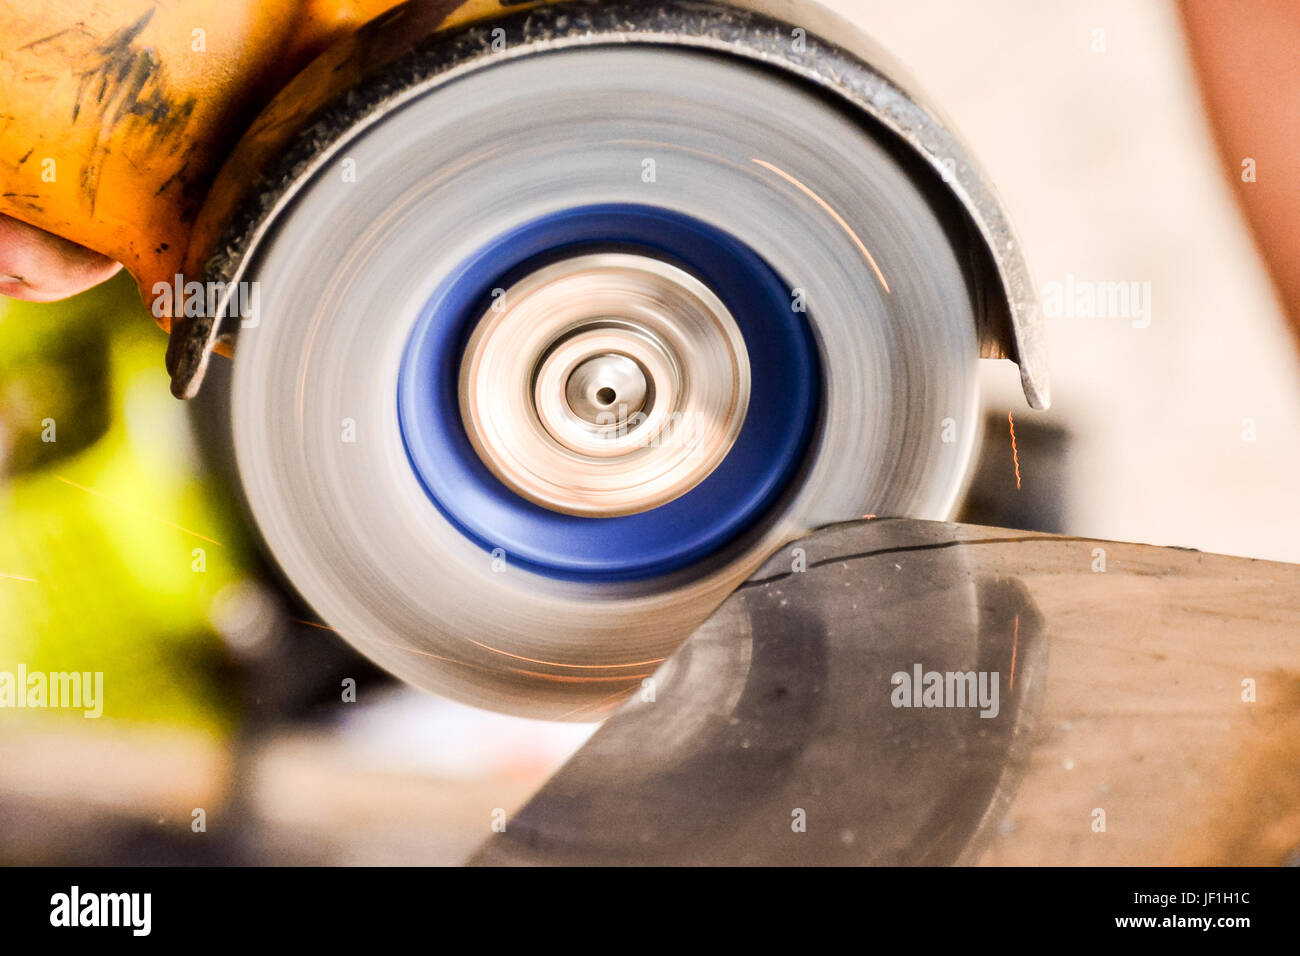 Cutting steel with angle grinder at car service - Stock Image